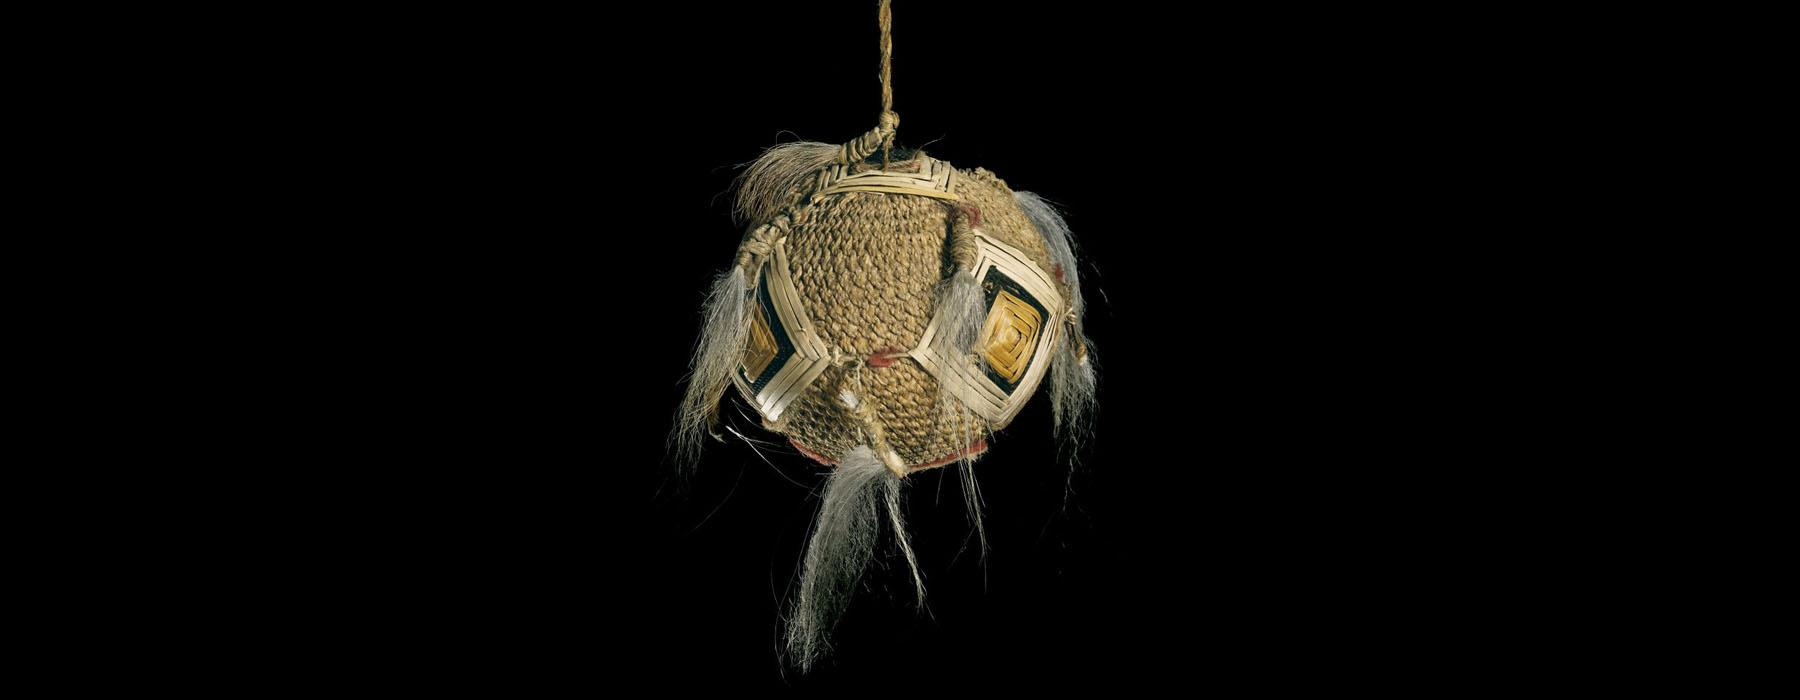 A very rare type woven in muka (flax fibre) with a technique called knotless netting. It is called a poi awe, due to the presence of the dog-hair awe (tassles) attached as decoration.